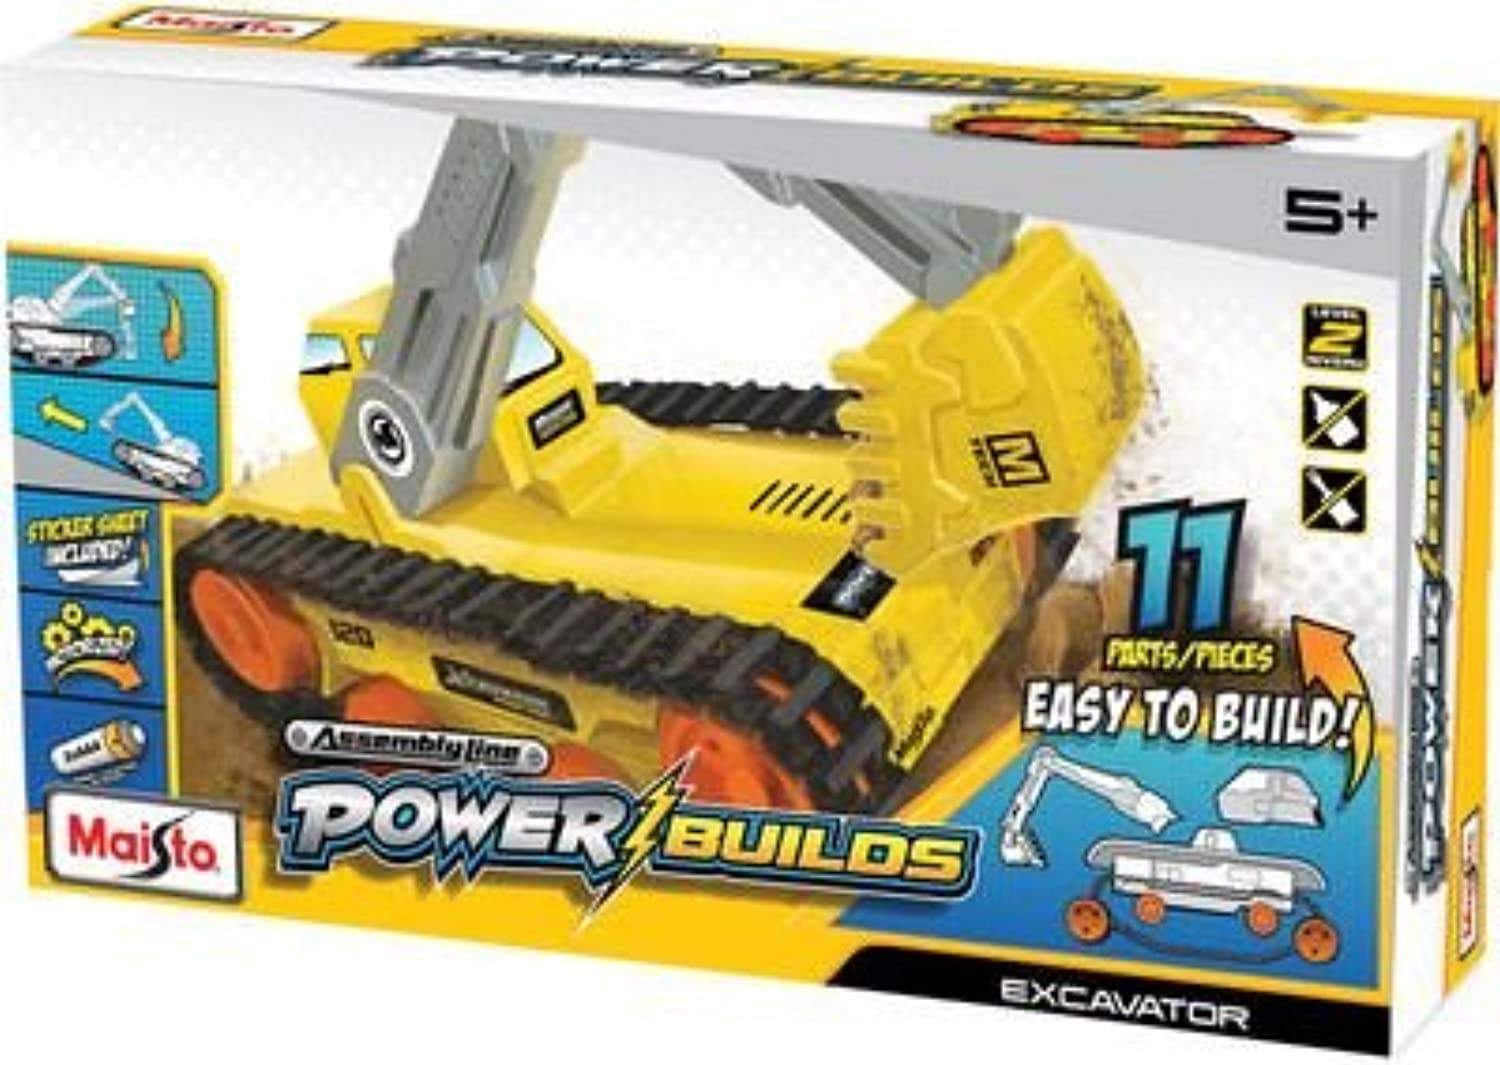 Maisto Assembly Line DO IT YOURSELF energia Builds Excavator modello Kit  82031